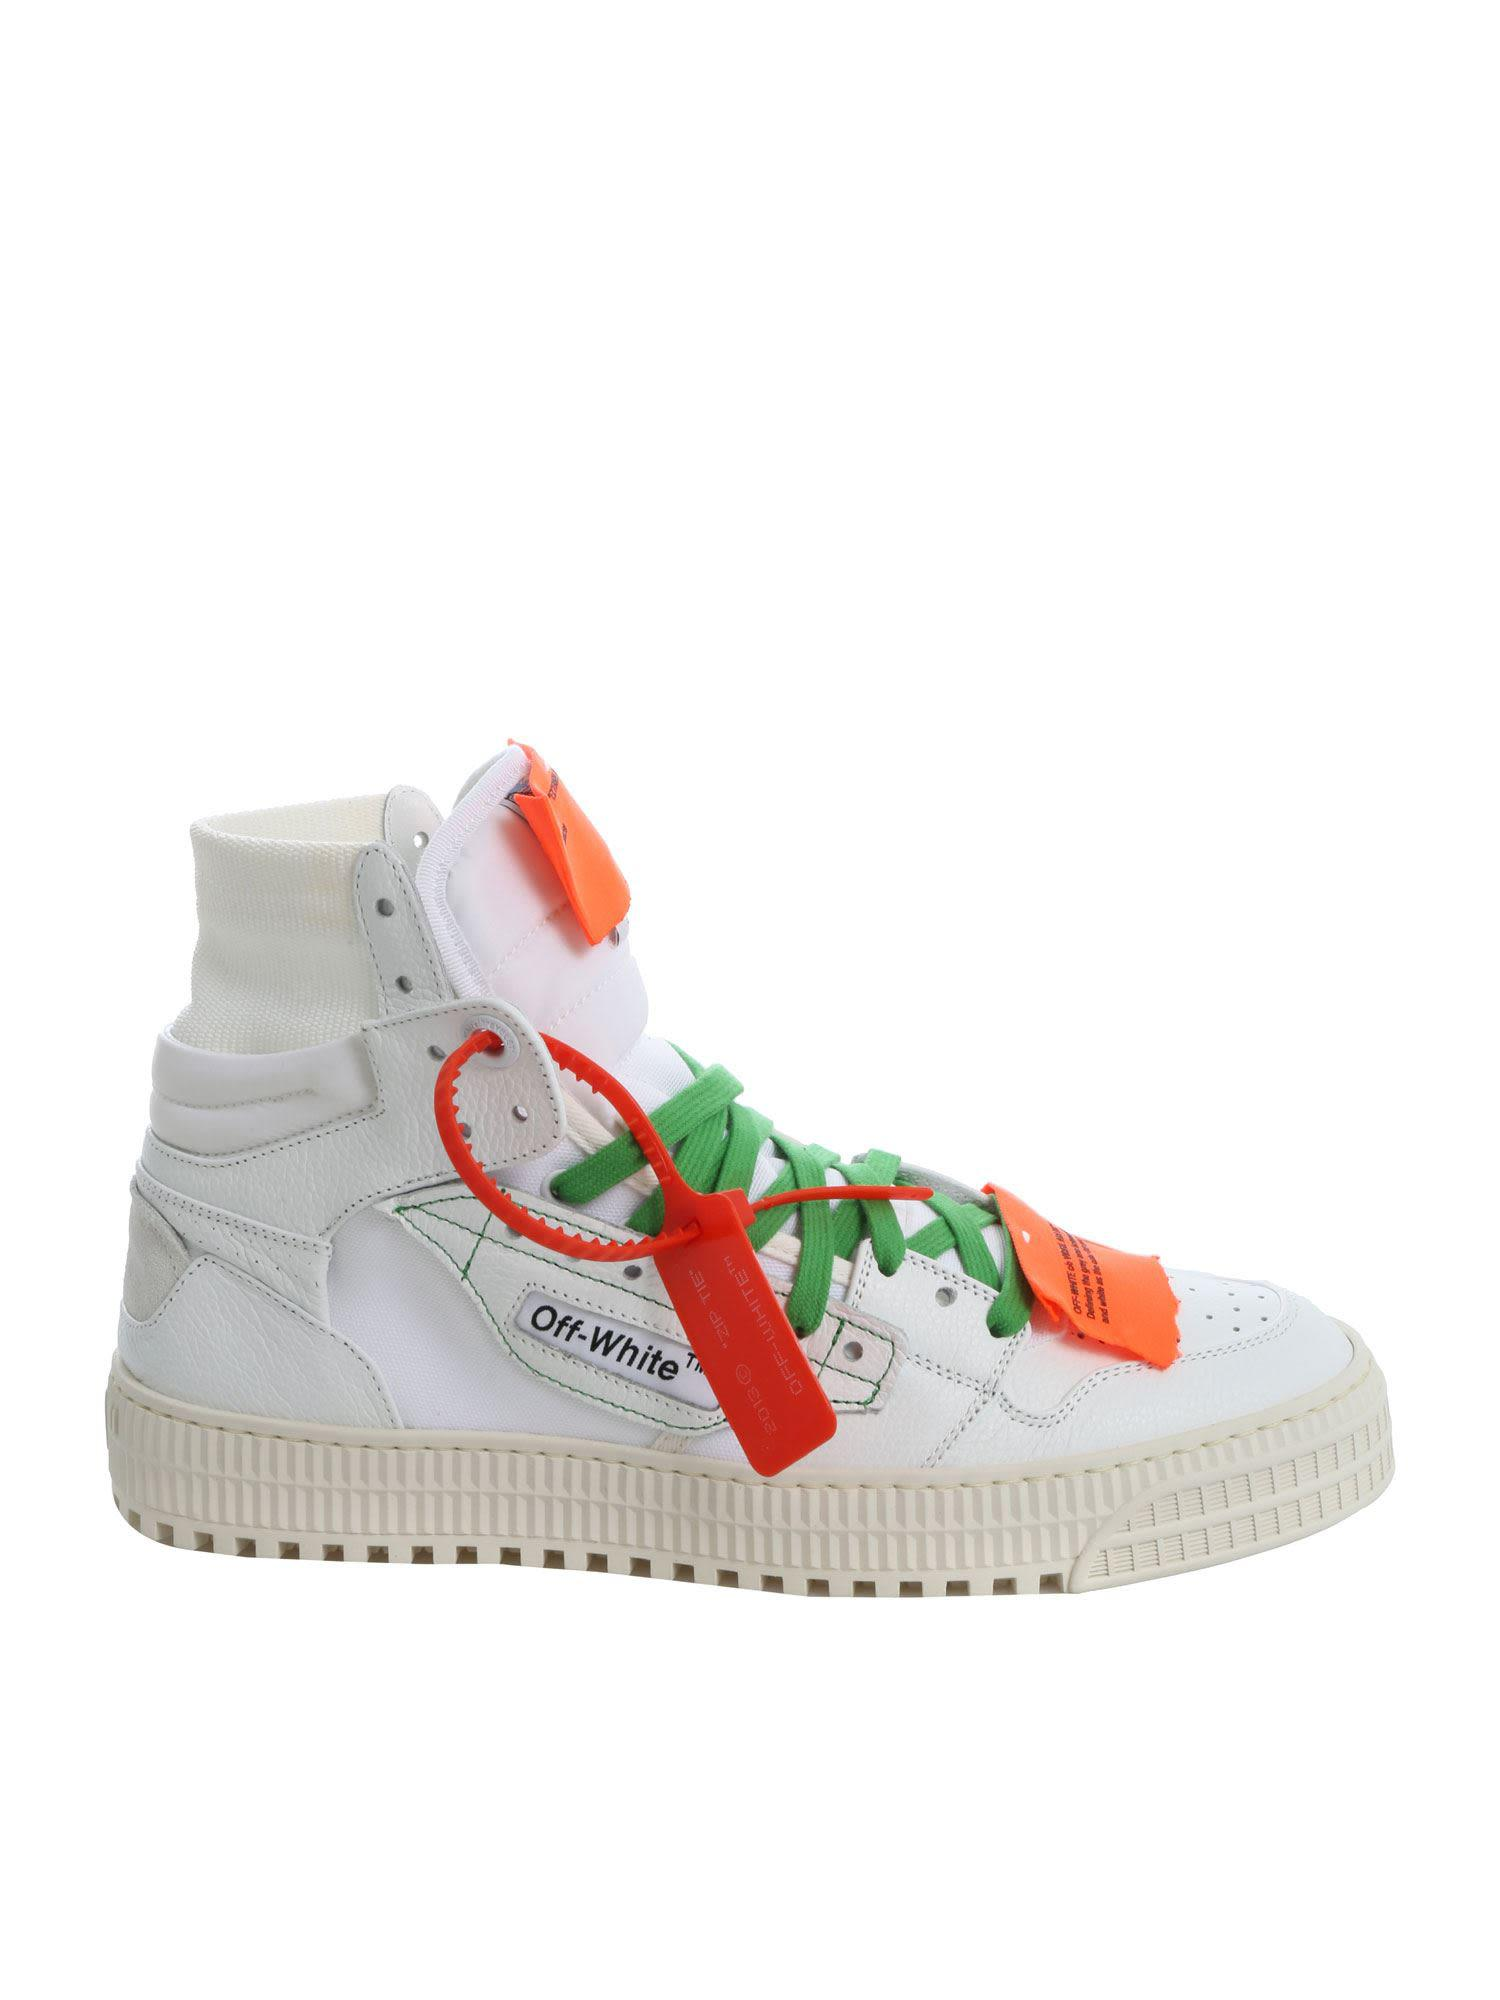 a33f4a2682a8 Off-White High Top Leather Sneakers In Bianco